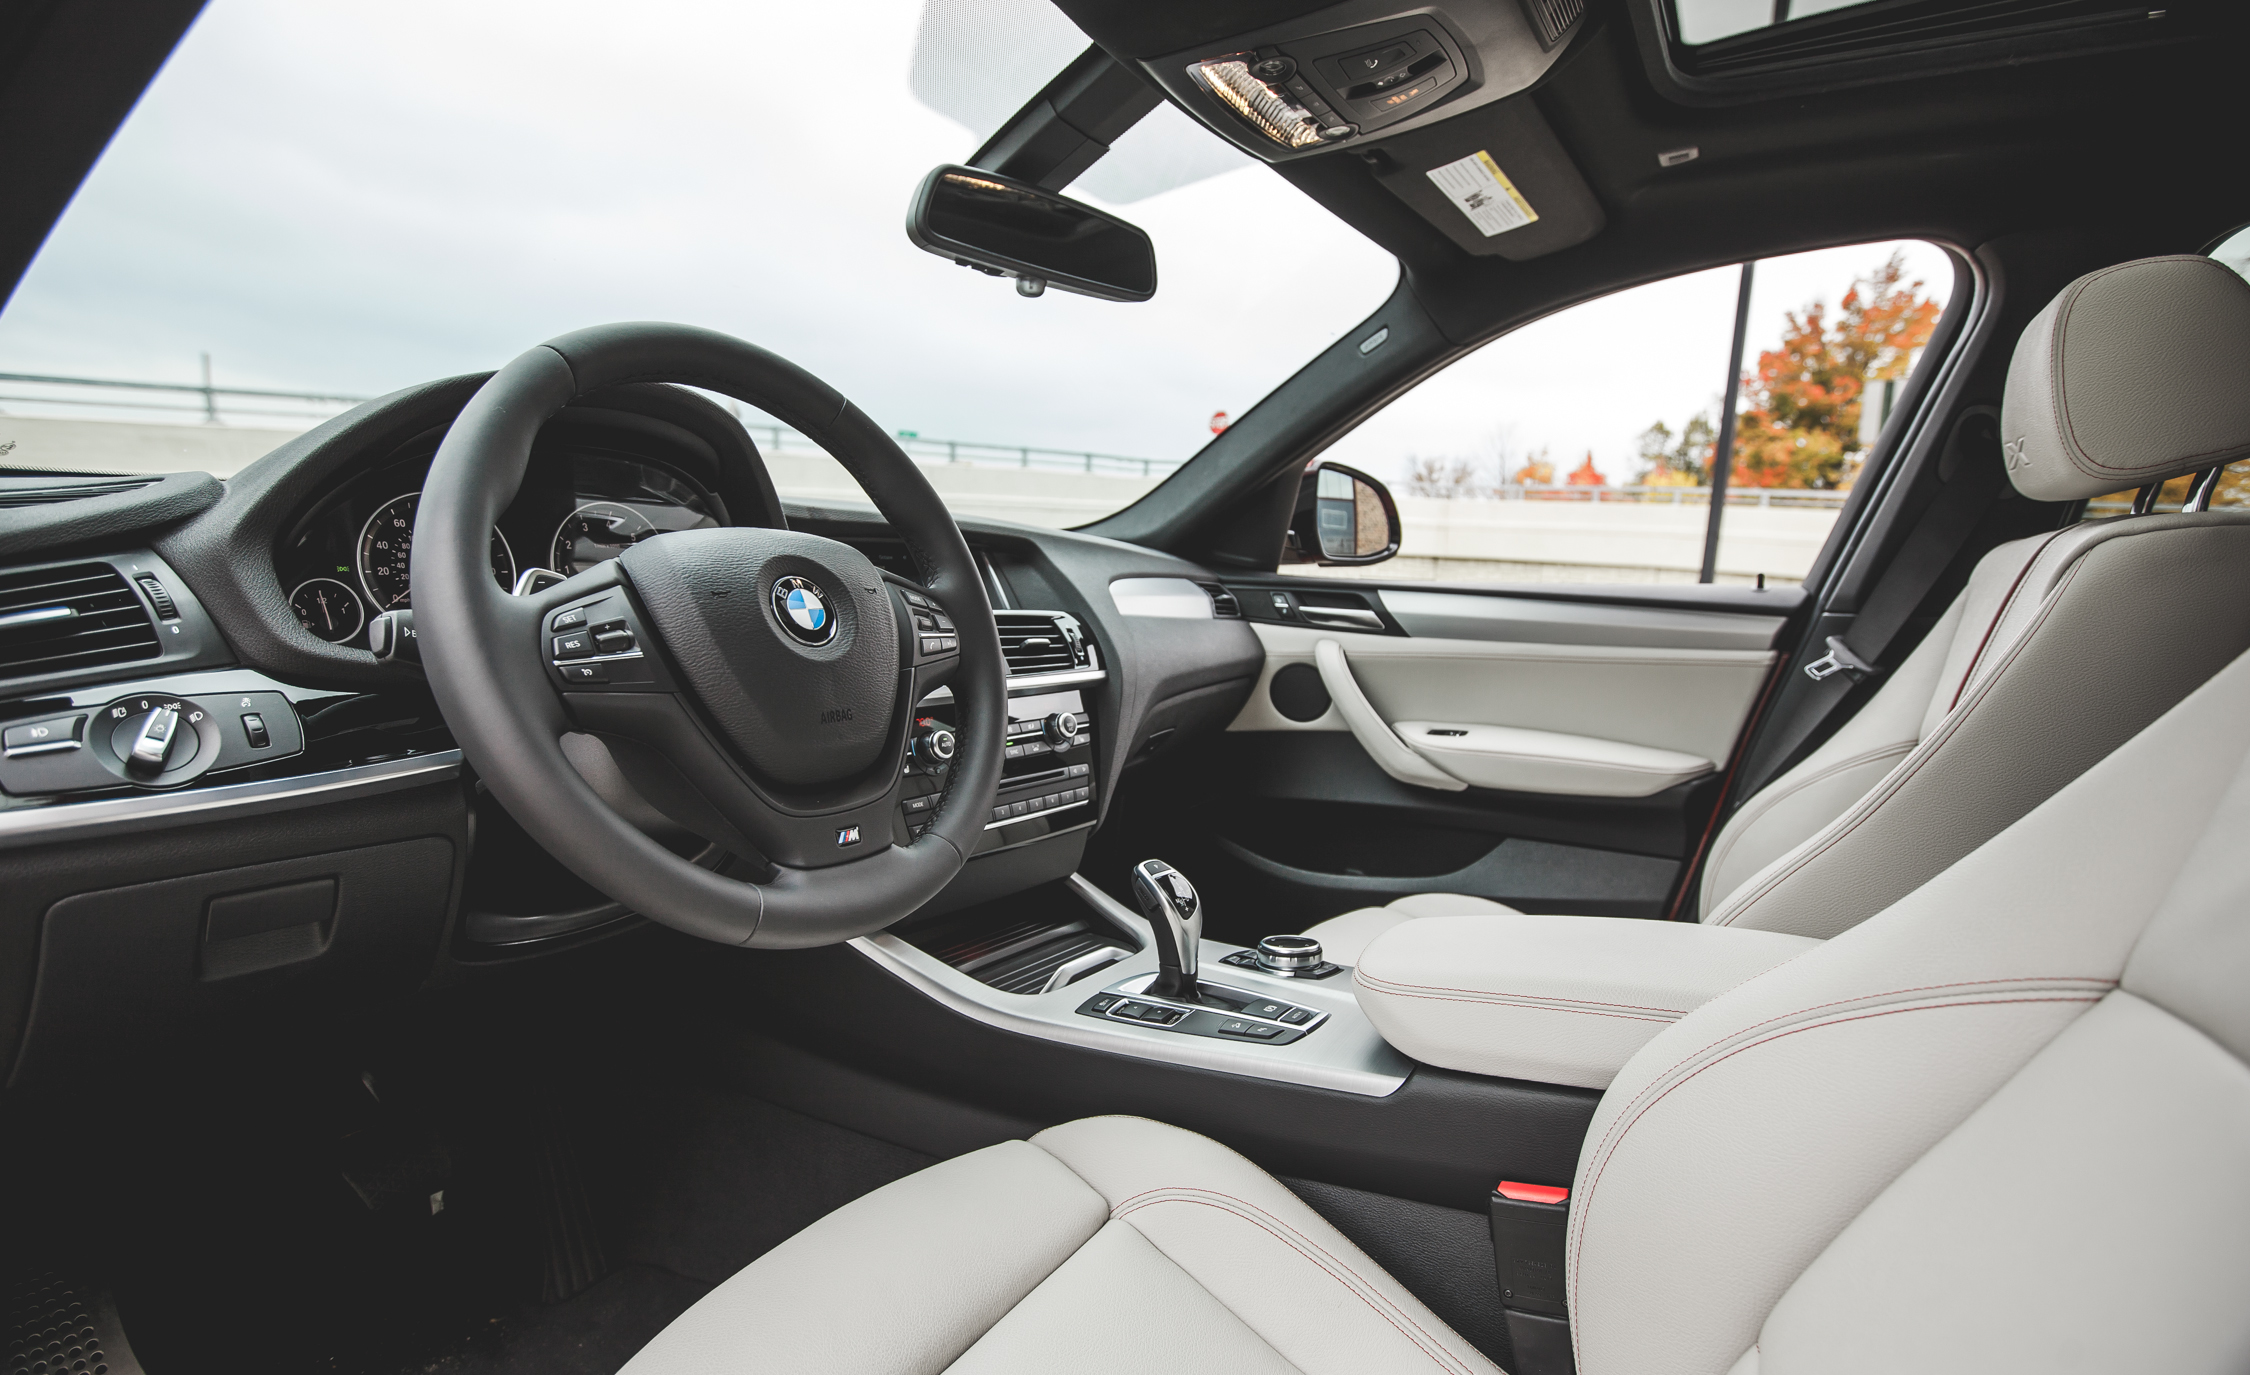 2015 BMW X4 xDrive28i Interior